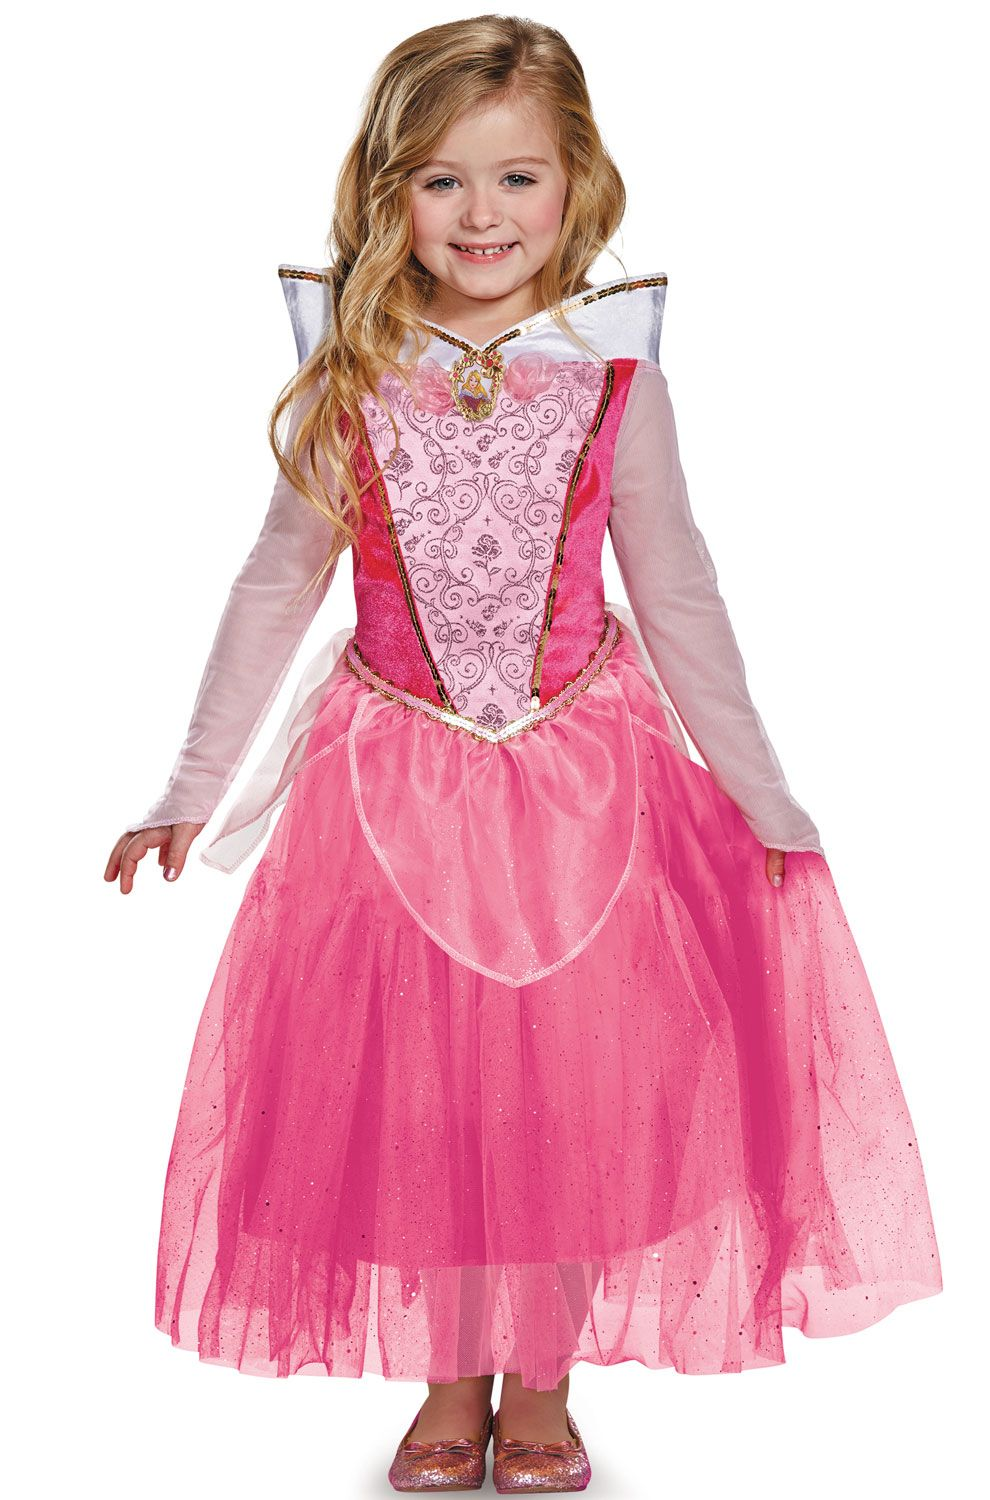 58a377789 Aurora Deluxe Child Costume   Perfect Princess Parties   Princess ...